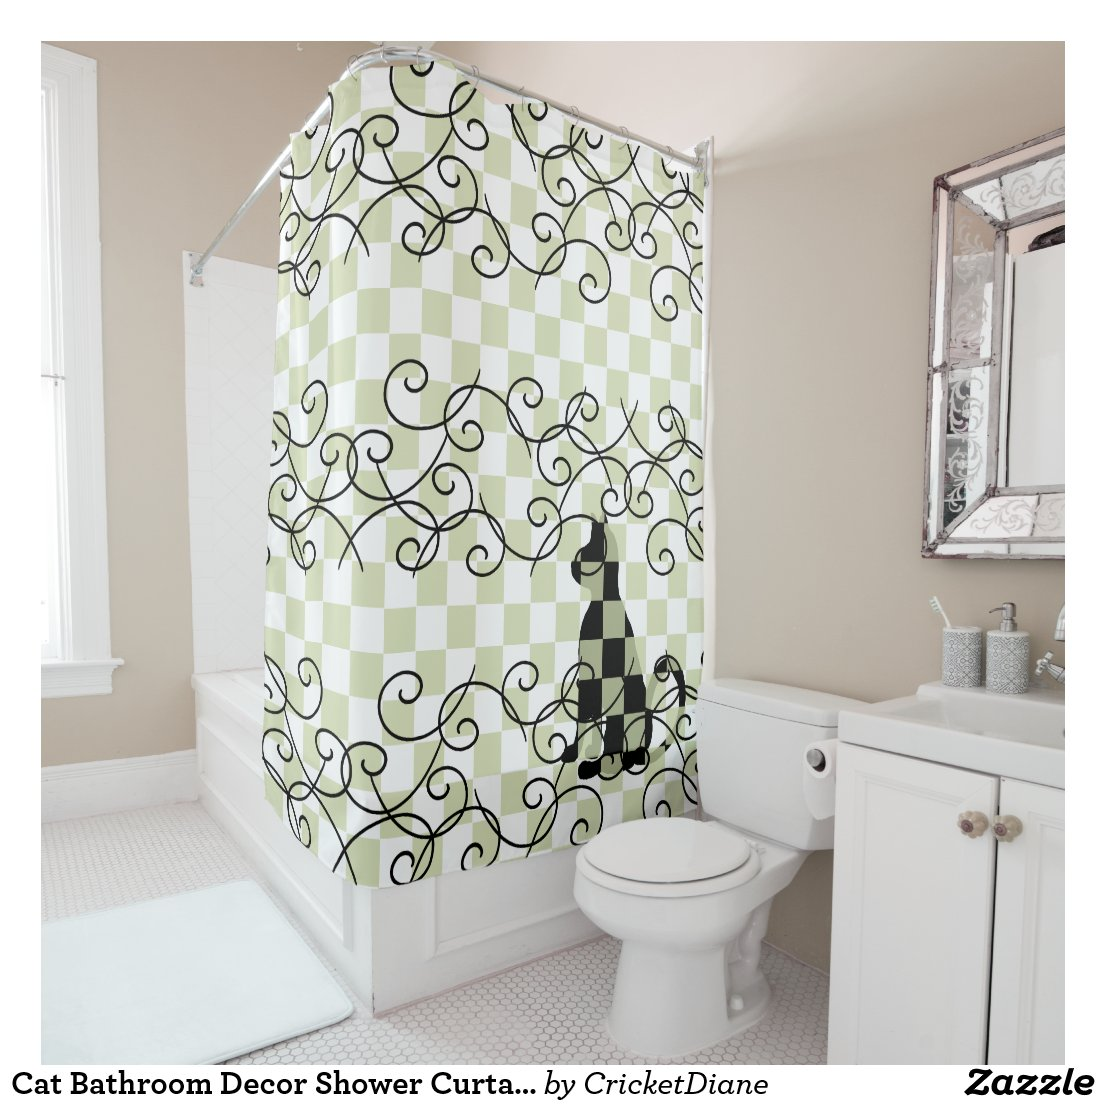 Cat Bathroom Decor Shower Curtains CricketDiane